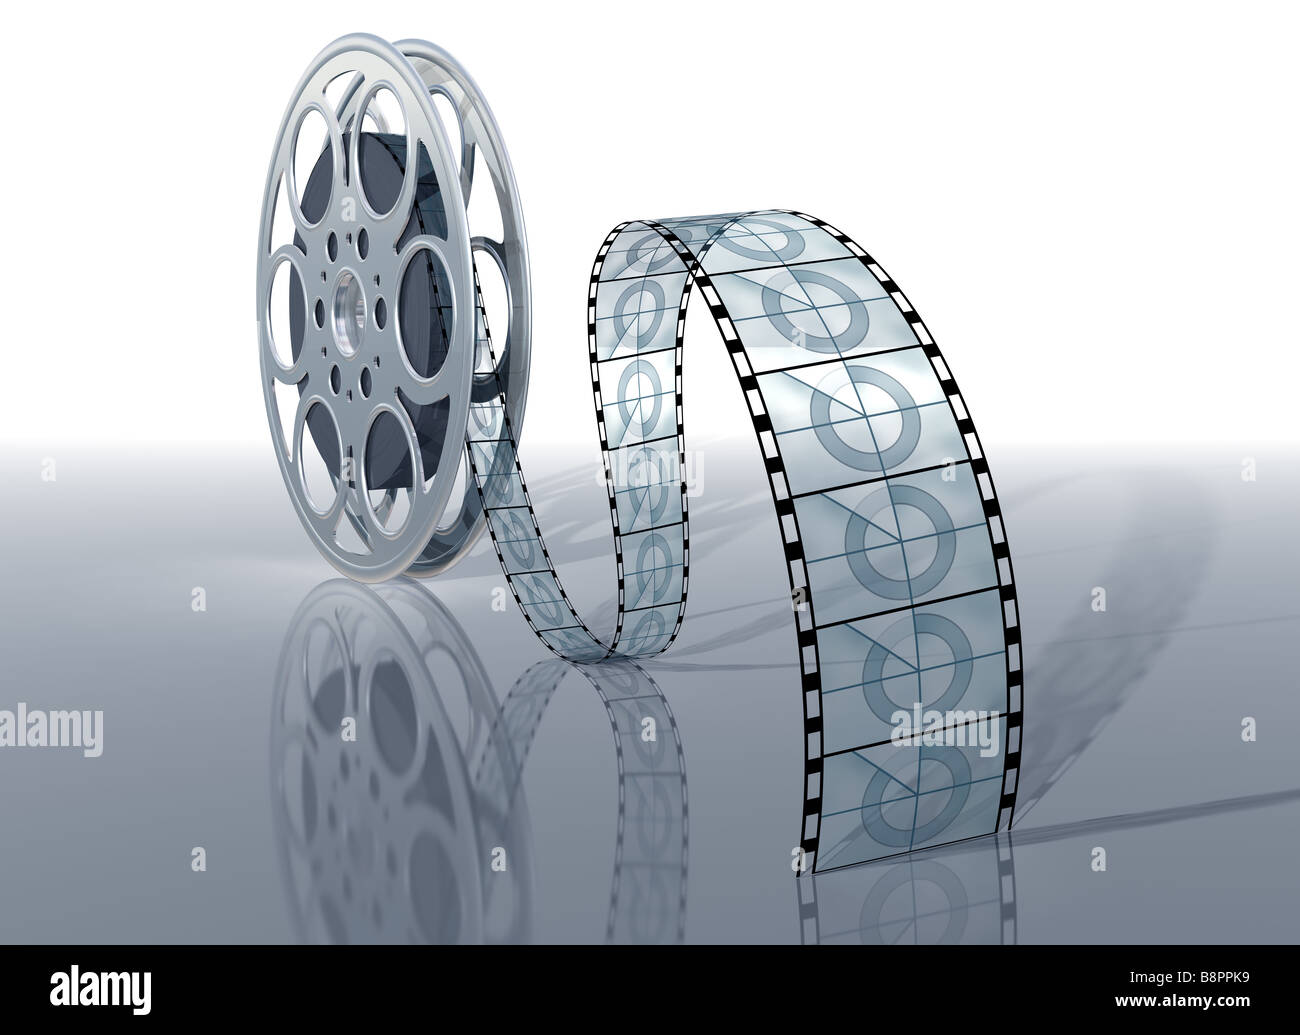 Illustration of a movie reel and film on a shiny surface - Stock Image